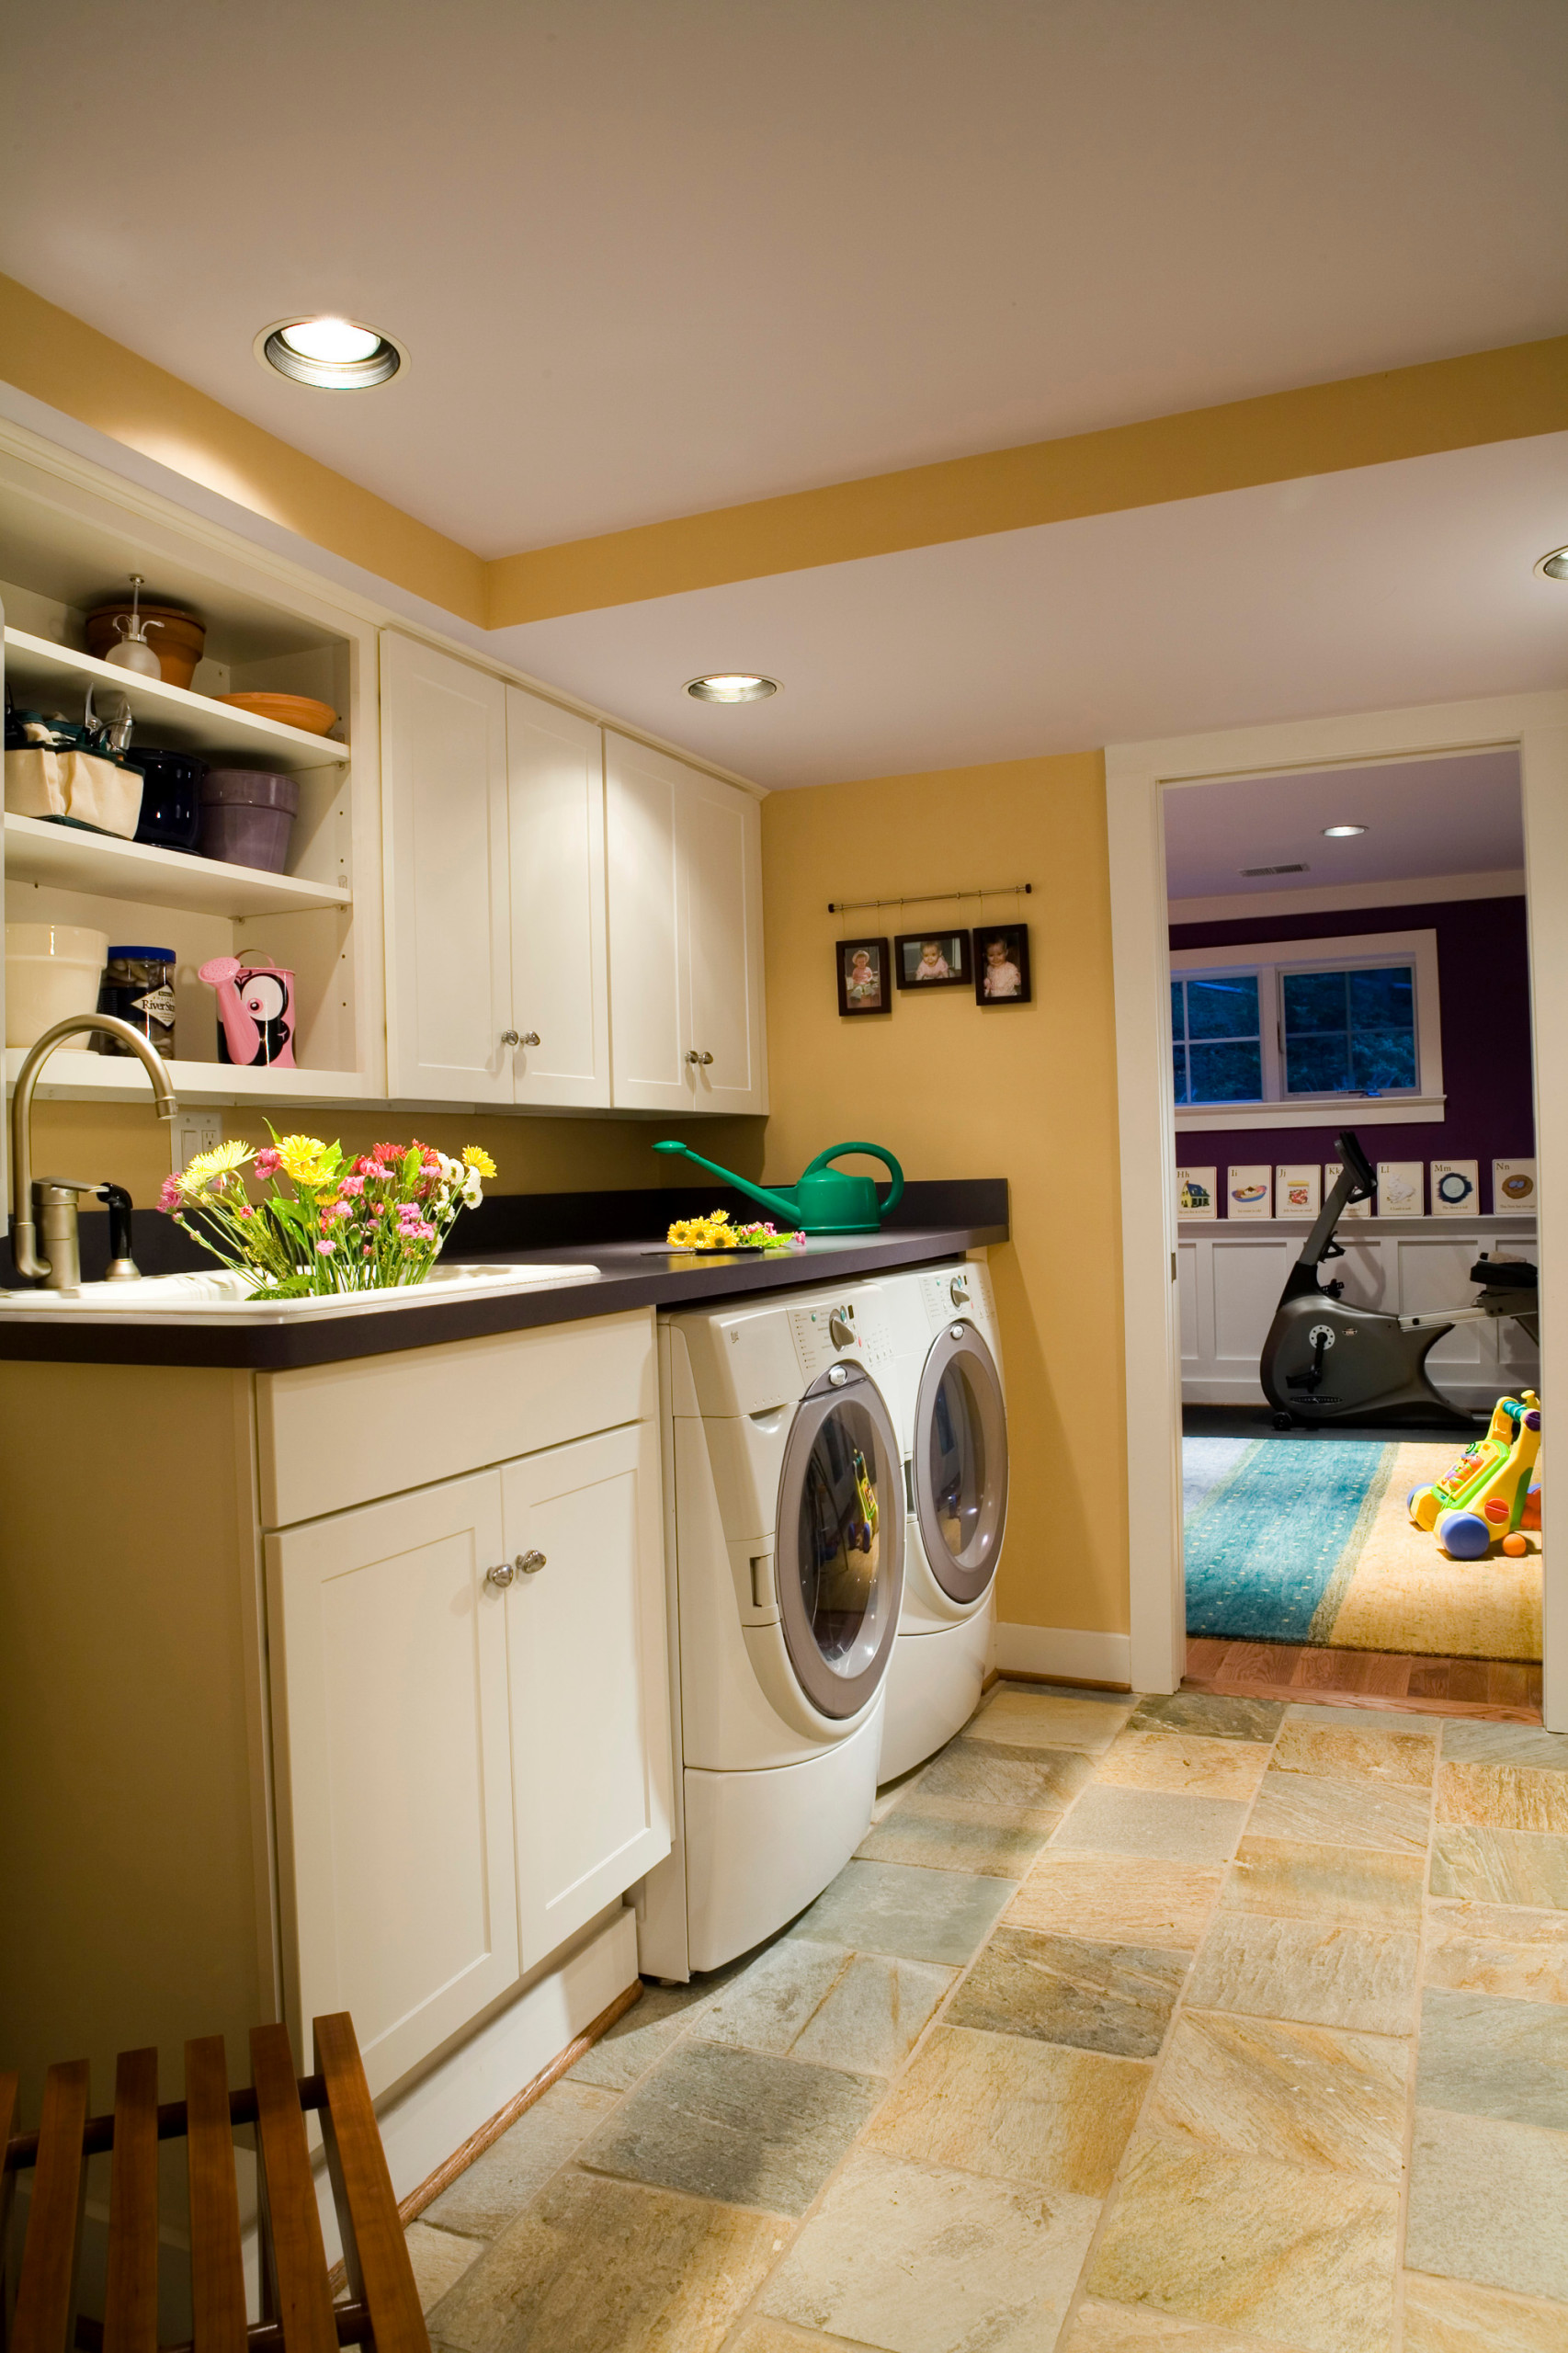 Basement Renovation Bedroom Playroom Bathroom Laundry Family Room Office Contemporary Laundry Room Dc Metro By Fisher Group Llc Houzz